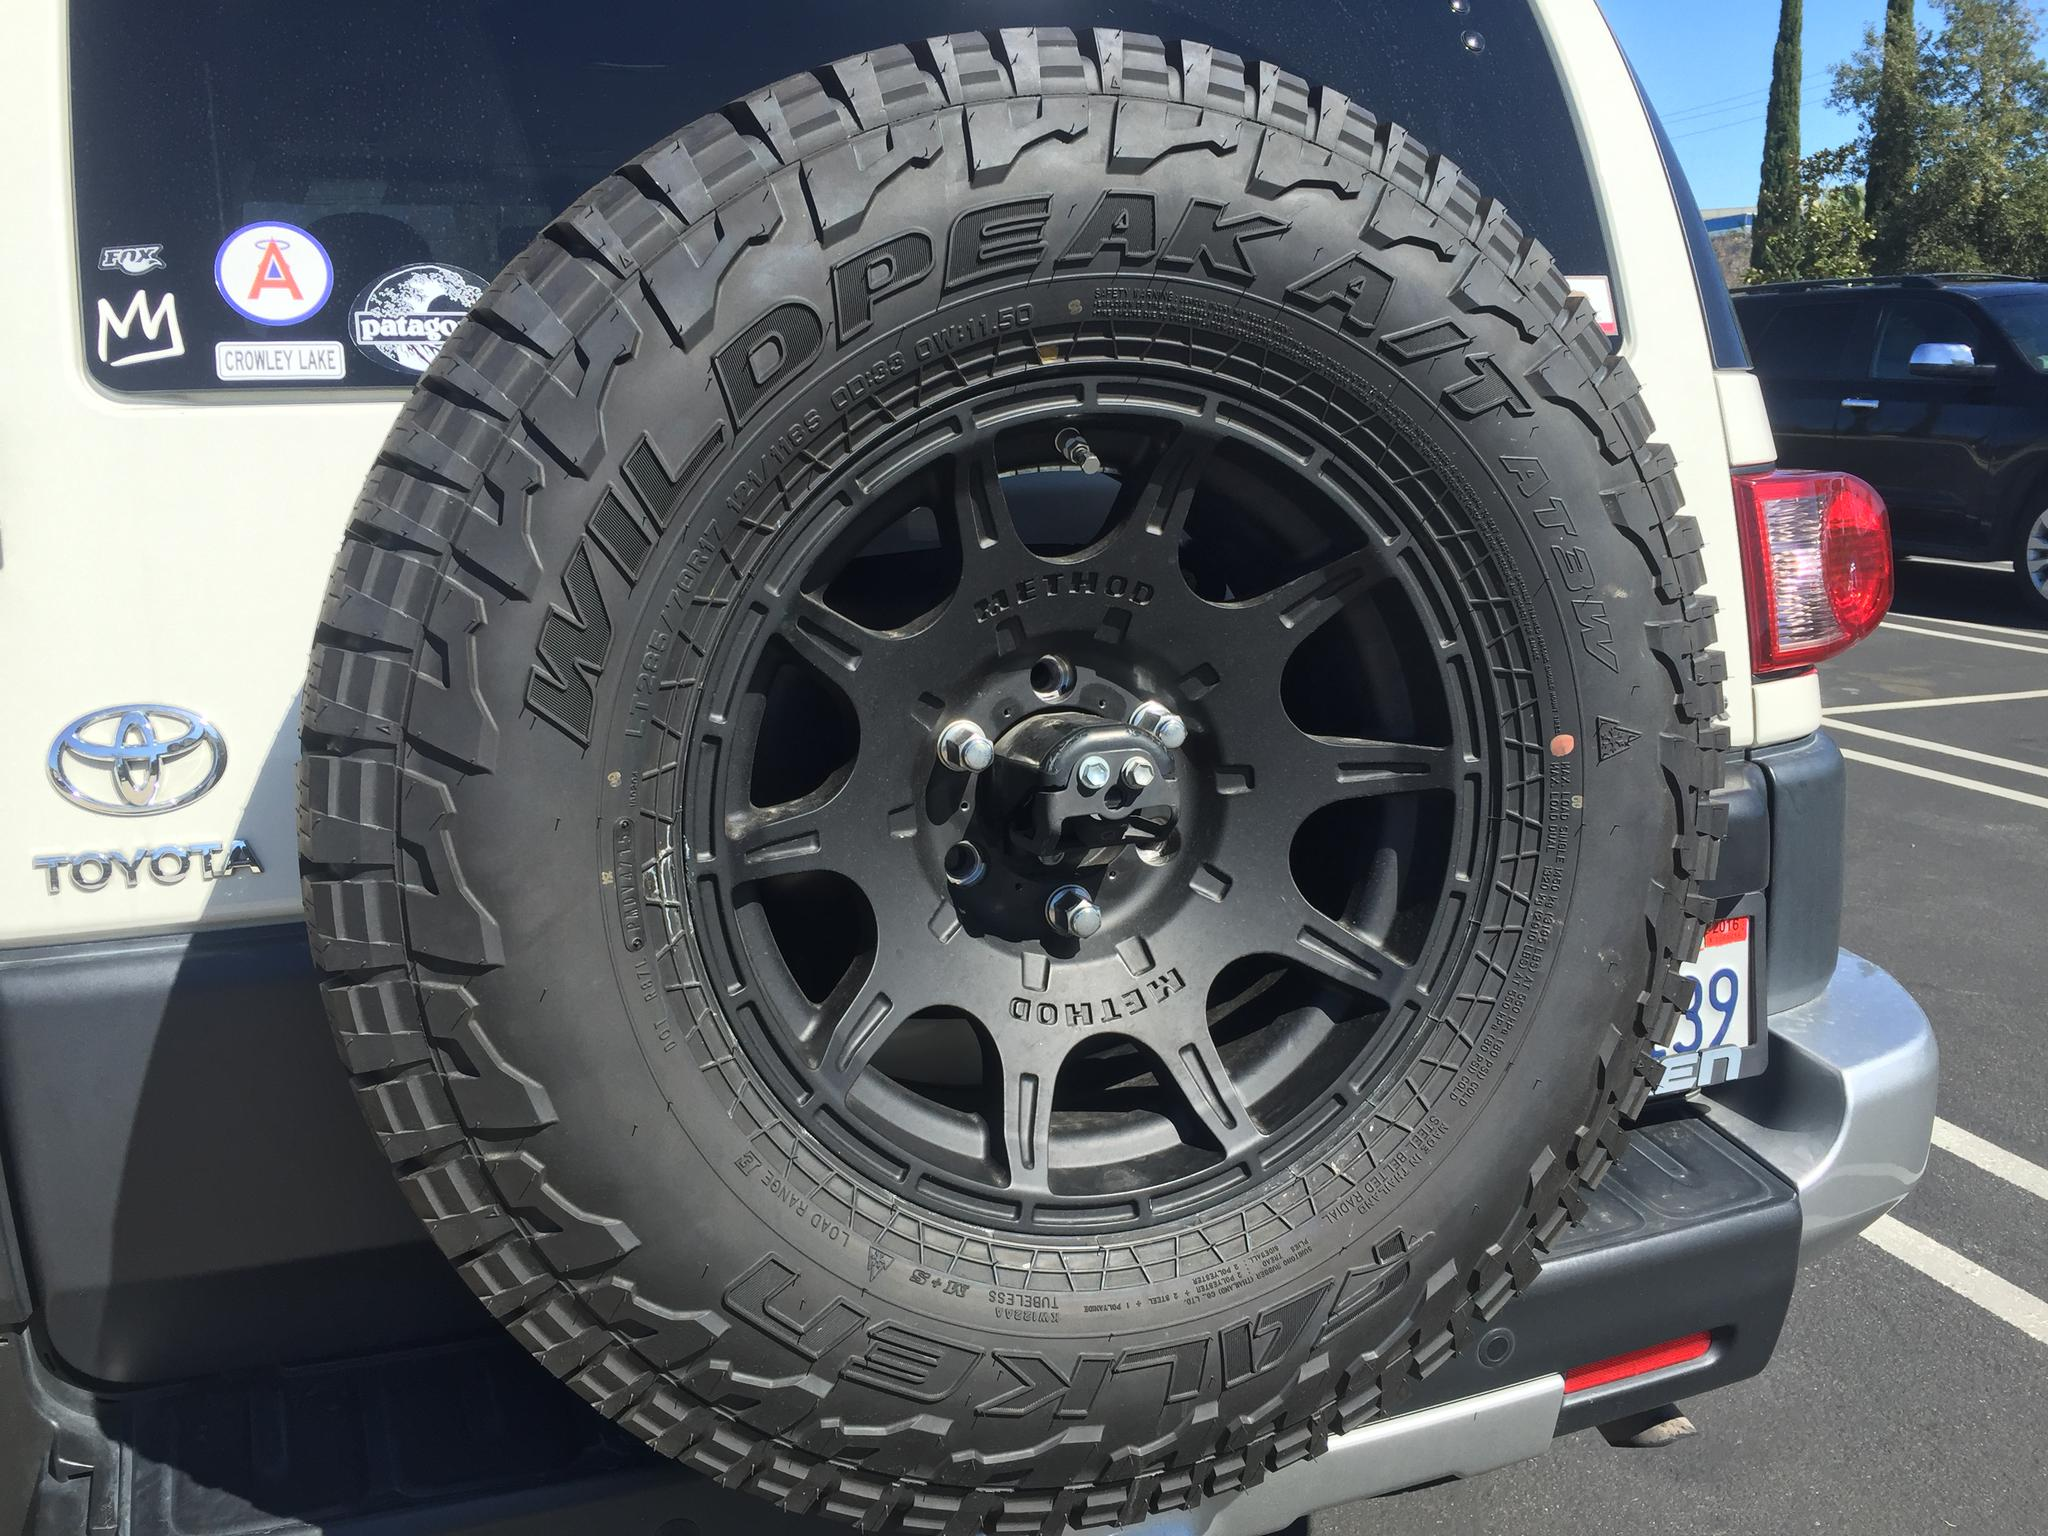 2016 Fj Cruiser >> Method Roost (Black) on Falken Wildpeak A/T3W - Toyota FJ Cruiser Forum